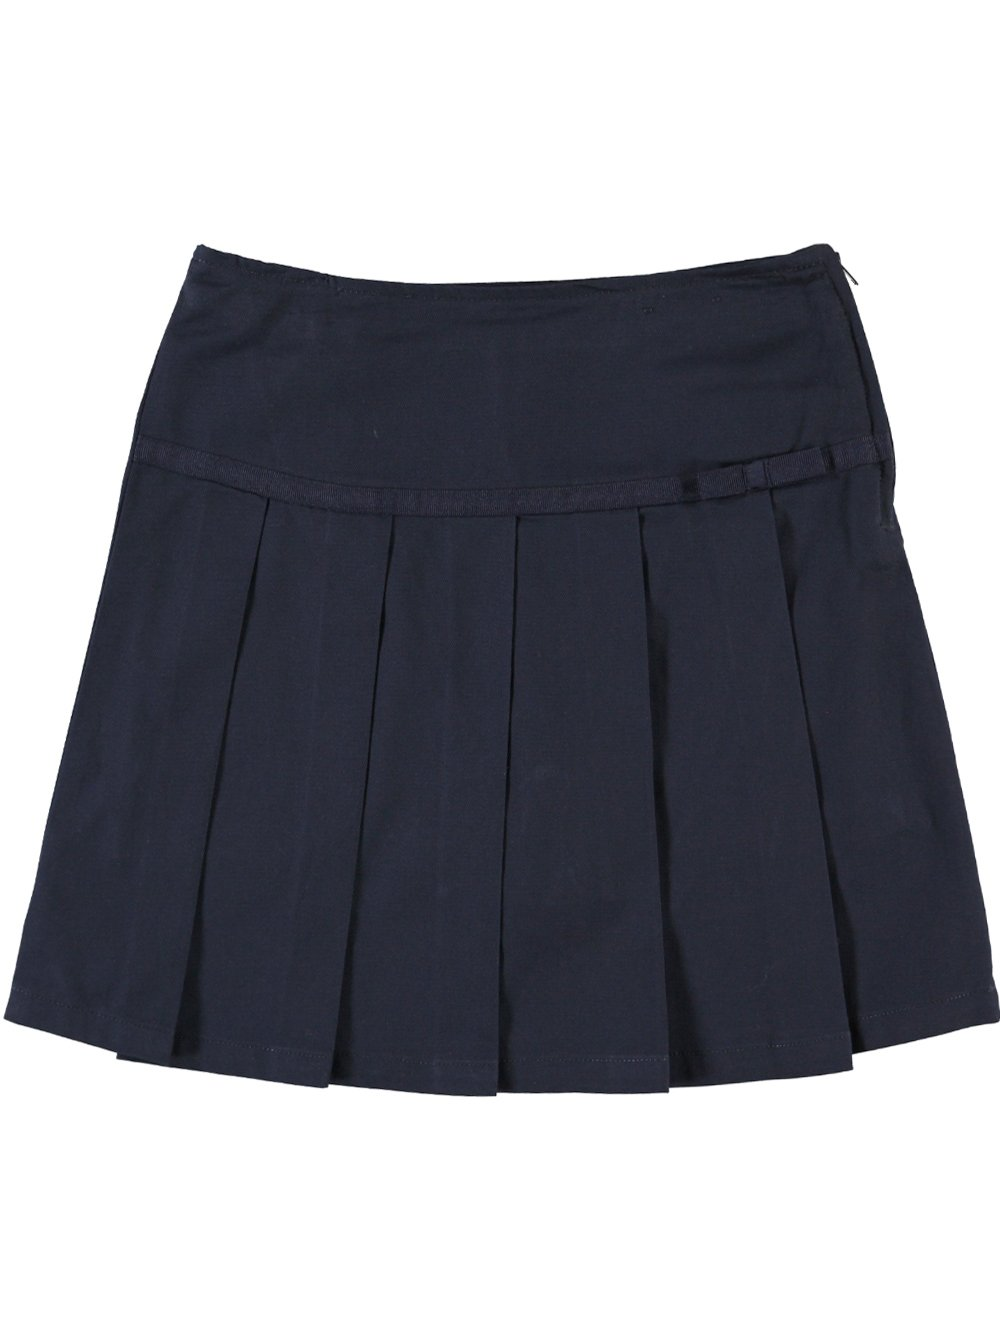 French Toast School Uniform Girls Pleated Scooter with Grosgrain Ribbon, Navy, 7